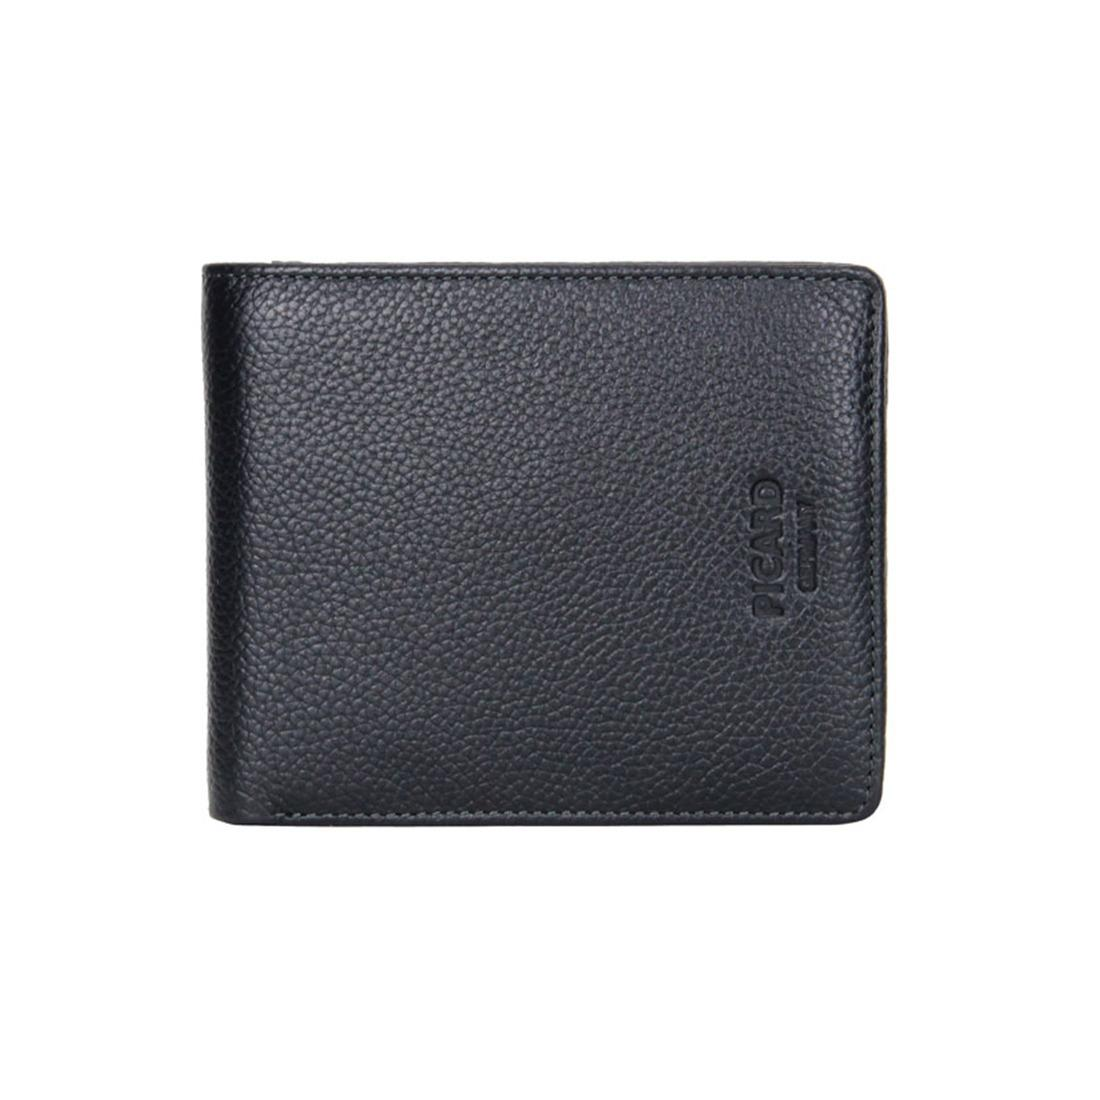 Sale Picard Urban Flap Wallet On Singapore